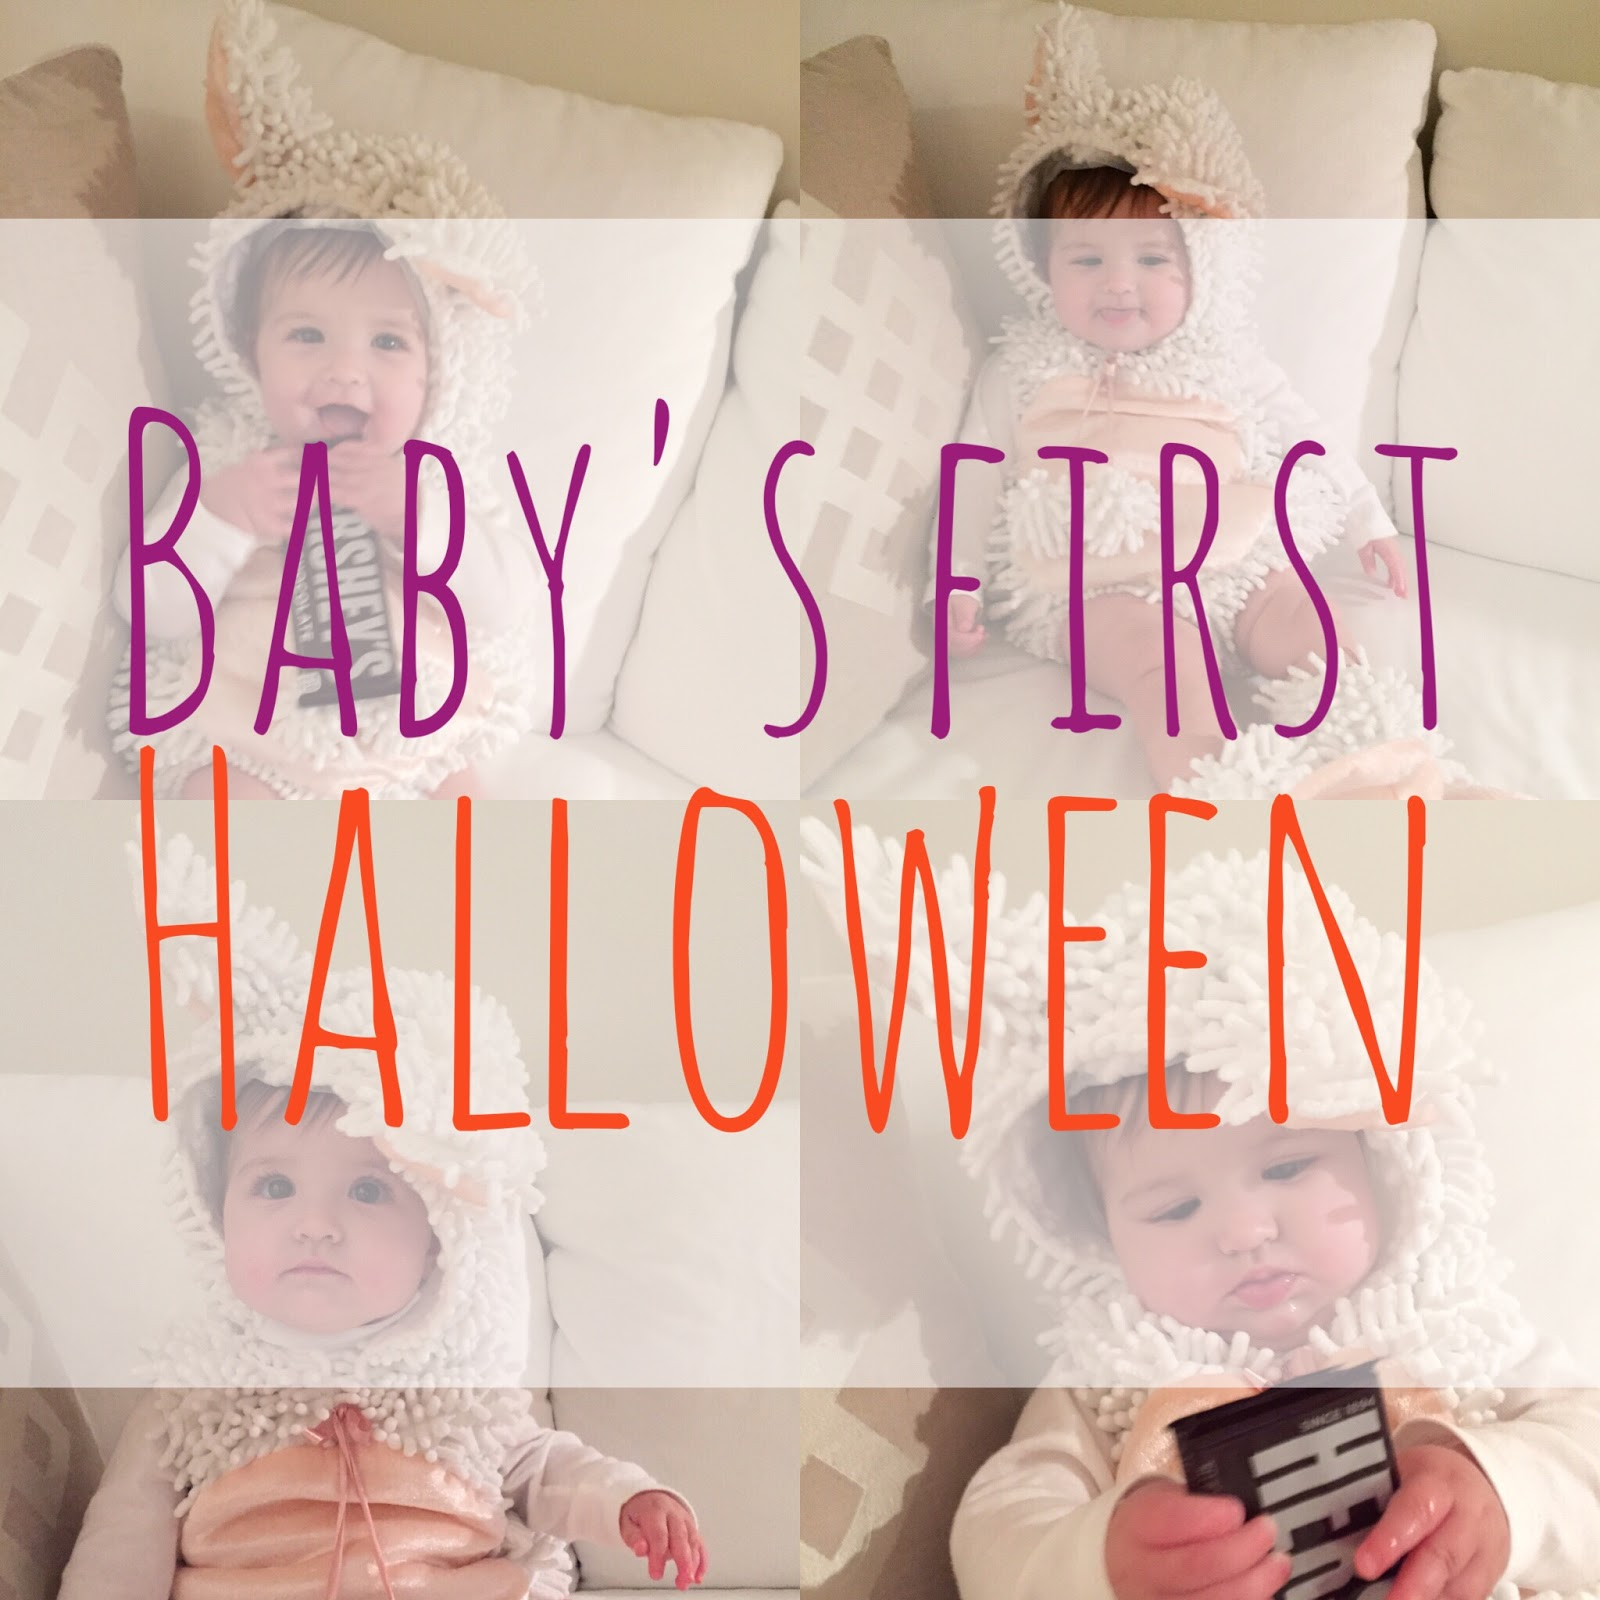 baby's first halloween - attention to darling